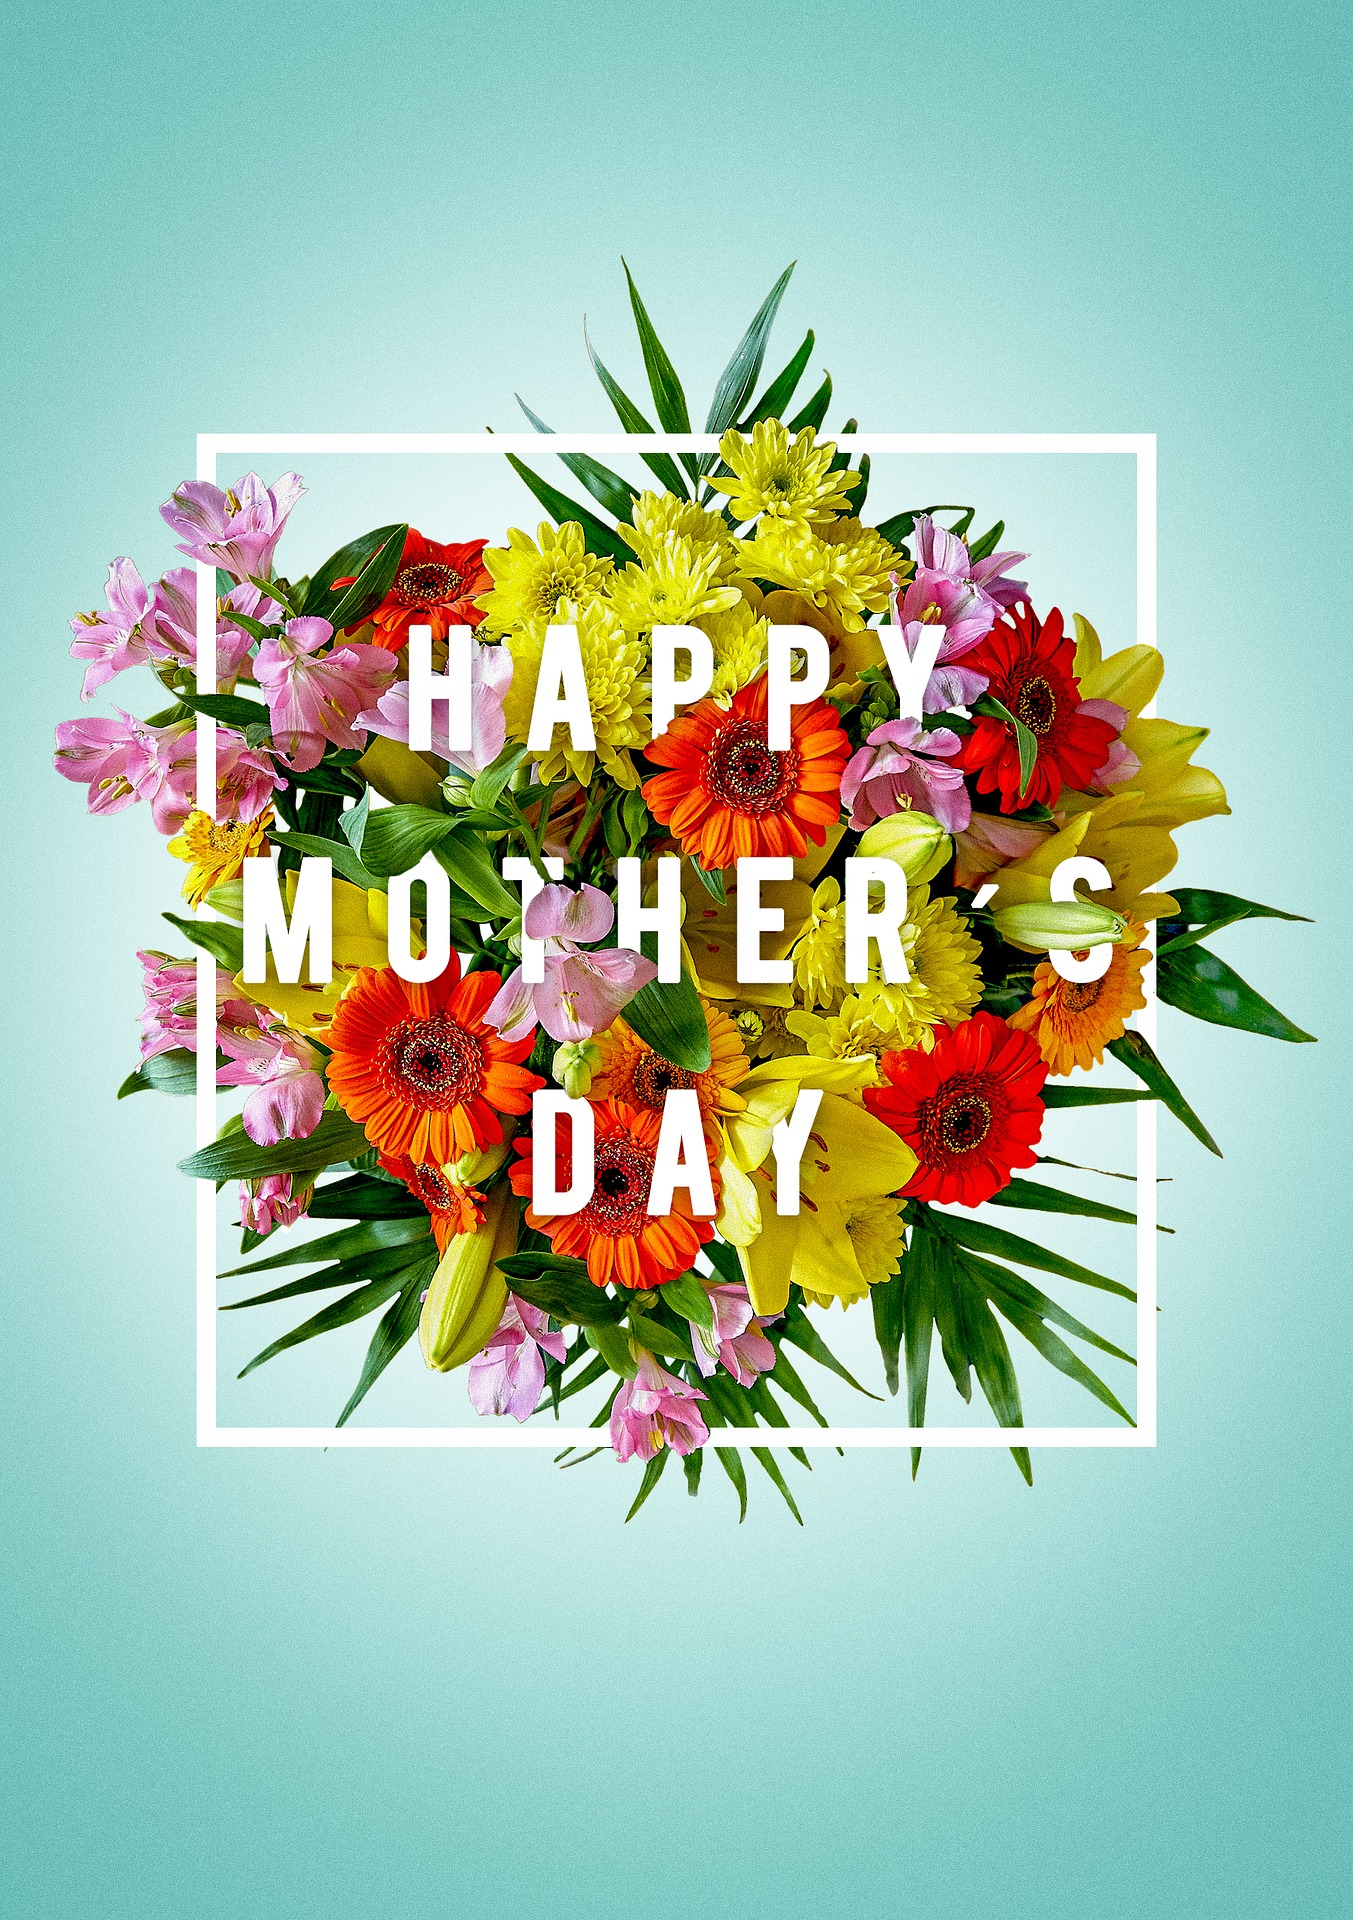 7 Ways SMBs Can Prepare for Mothers Day